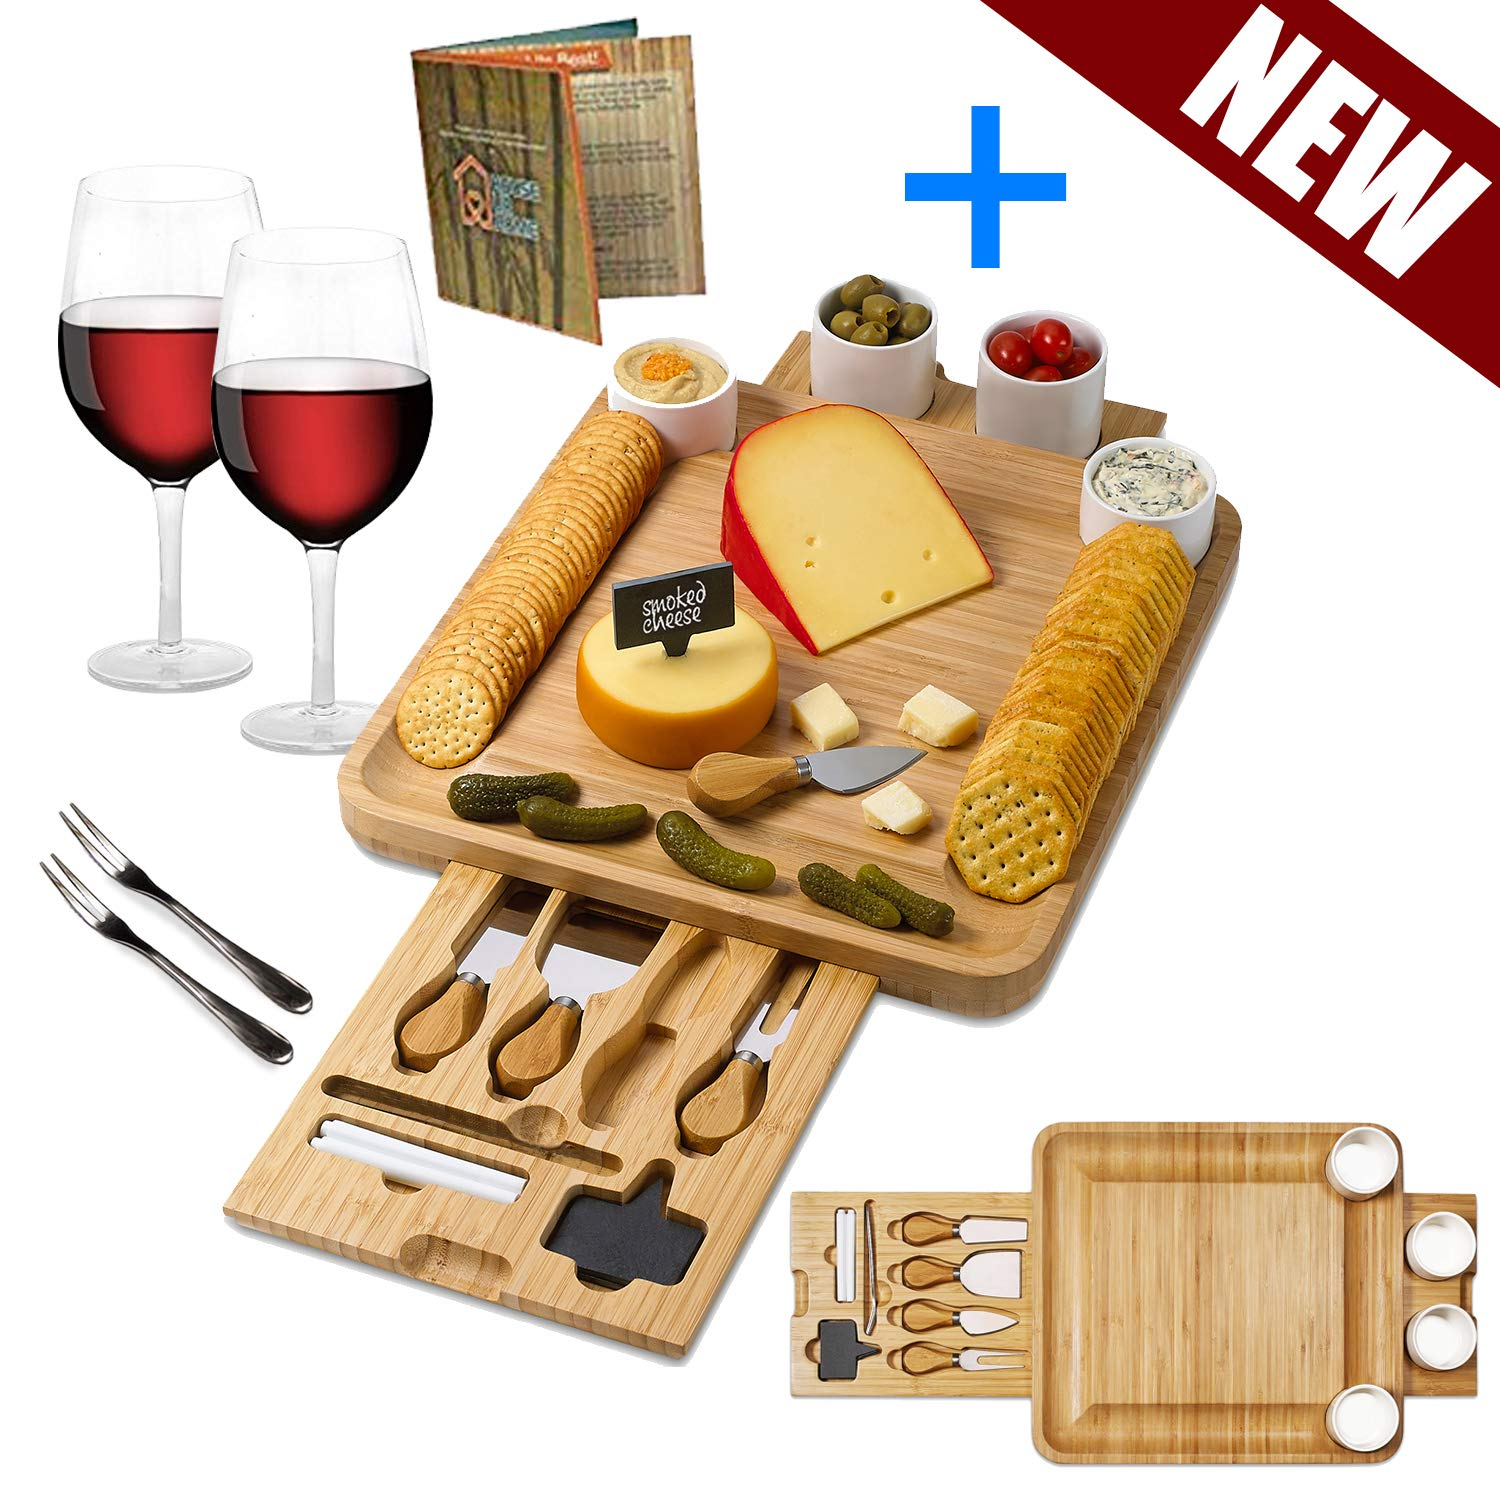 Bamboo Cheese Board Wooden 4 Ceramic Bowls. Magnetic 2 Drawers Serving Platter Cutlery Knife Set .2 Server Forks. Slate Labels and Markers Gift for Birthdays, Wedding Registry,Housewarming by HOUSE UR HOME